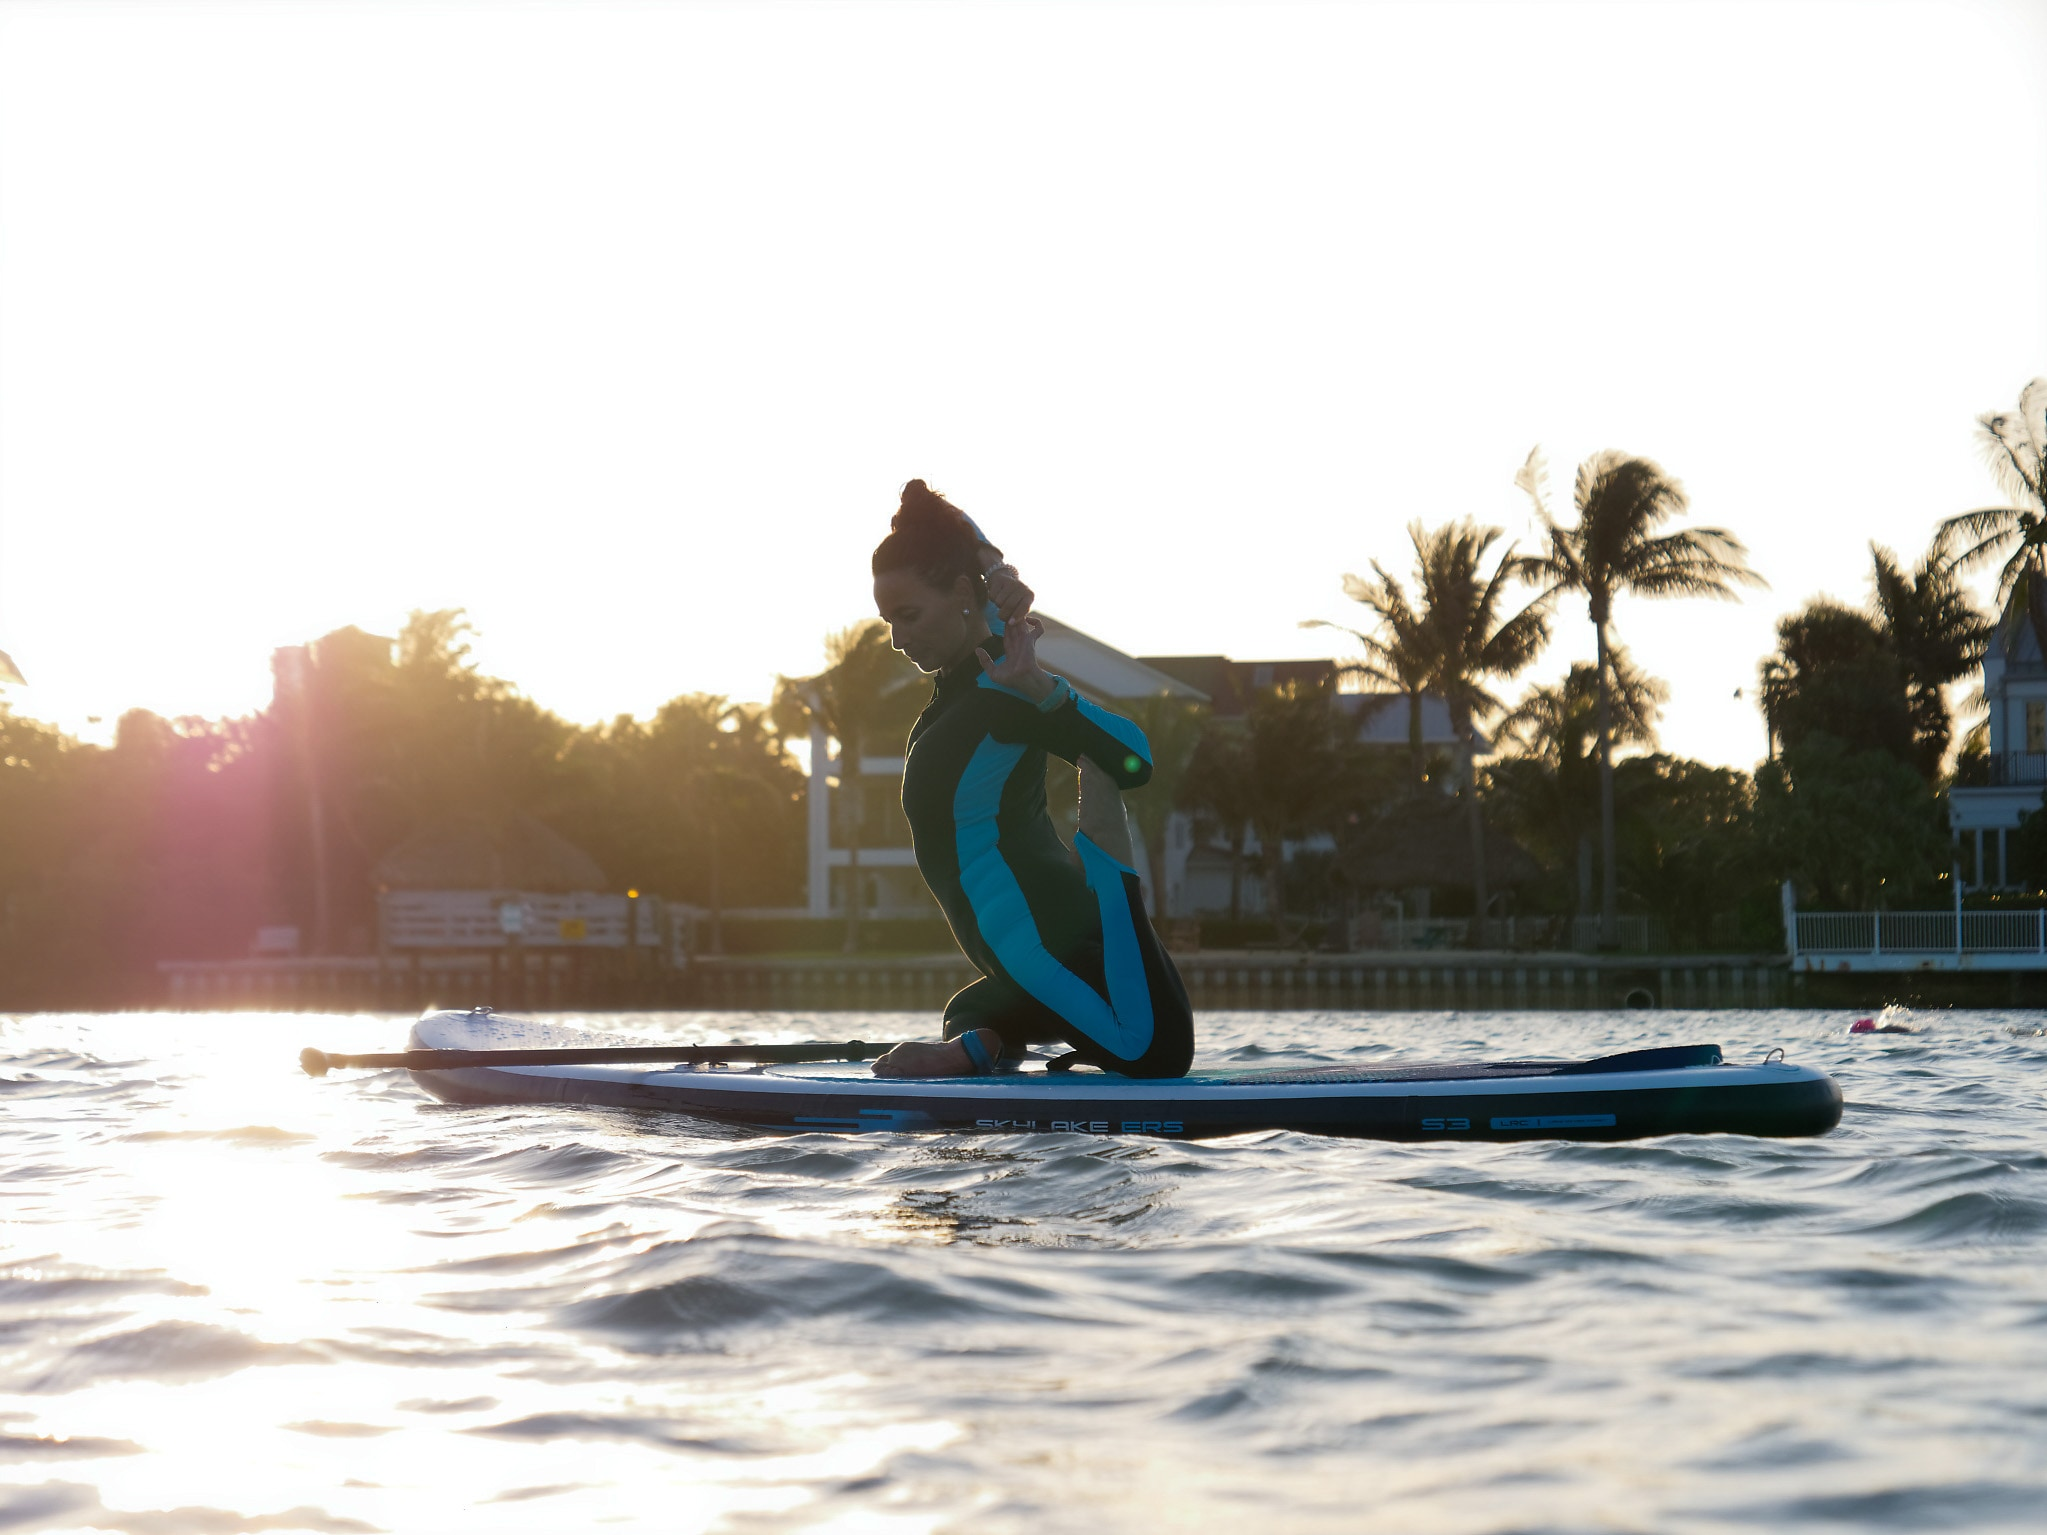 Yoga on an inflatable SUP board